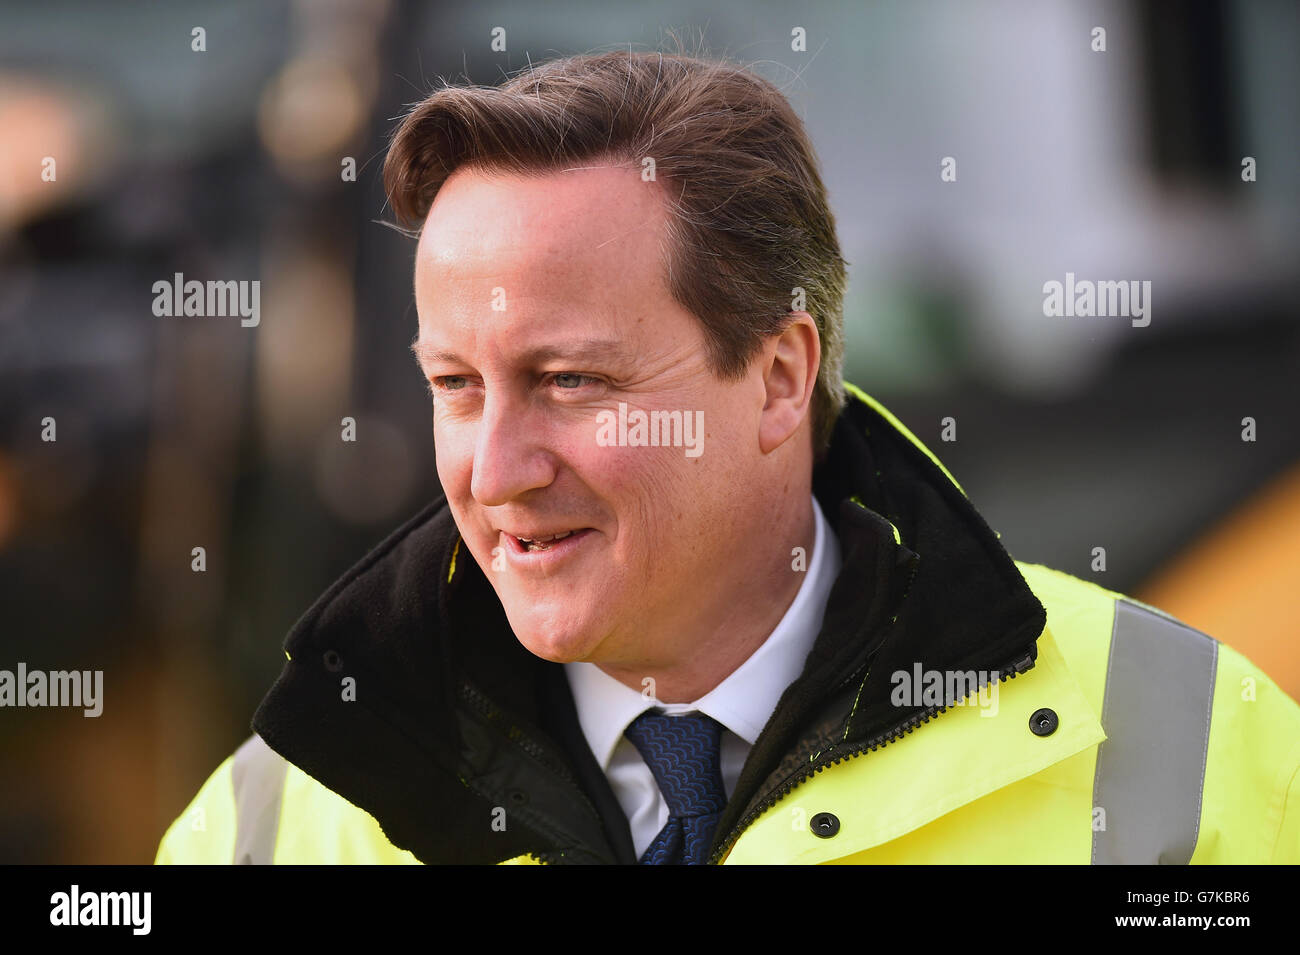 Prime Minister David Cameron views new building work at Edinburgh Airport on his making his first visit to Scotland since the independence referendum last September. Stock Photo